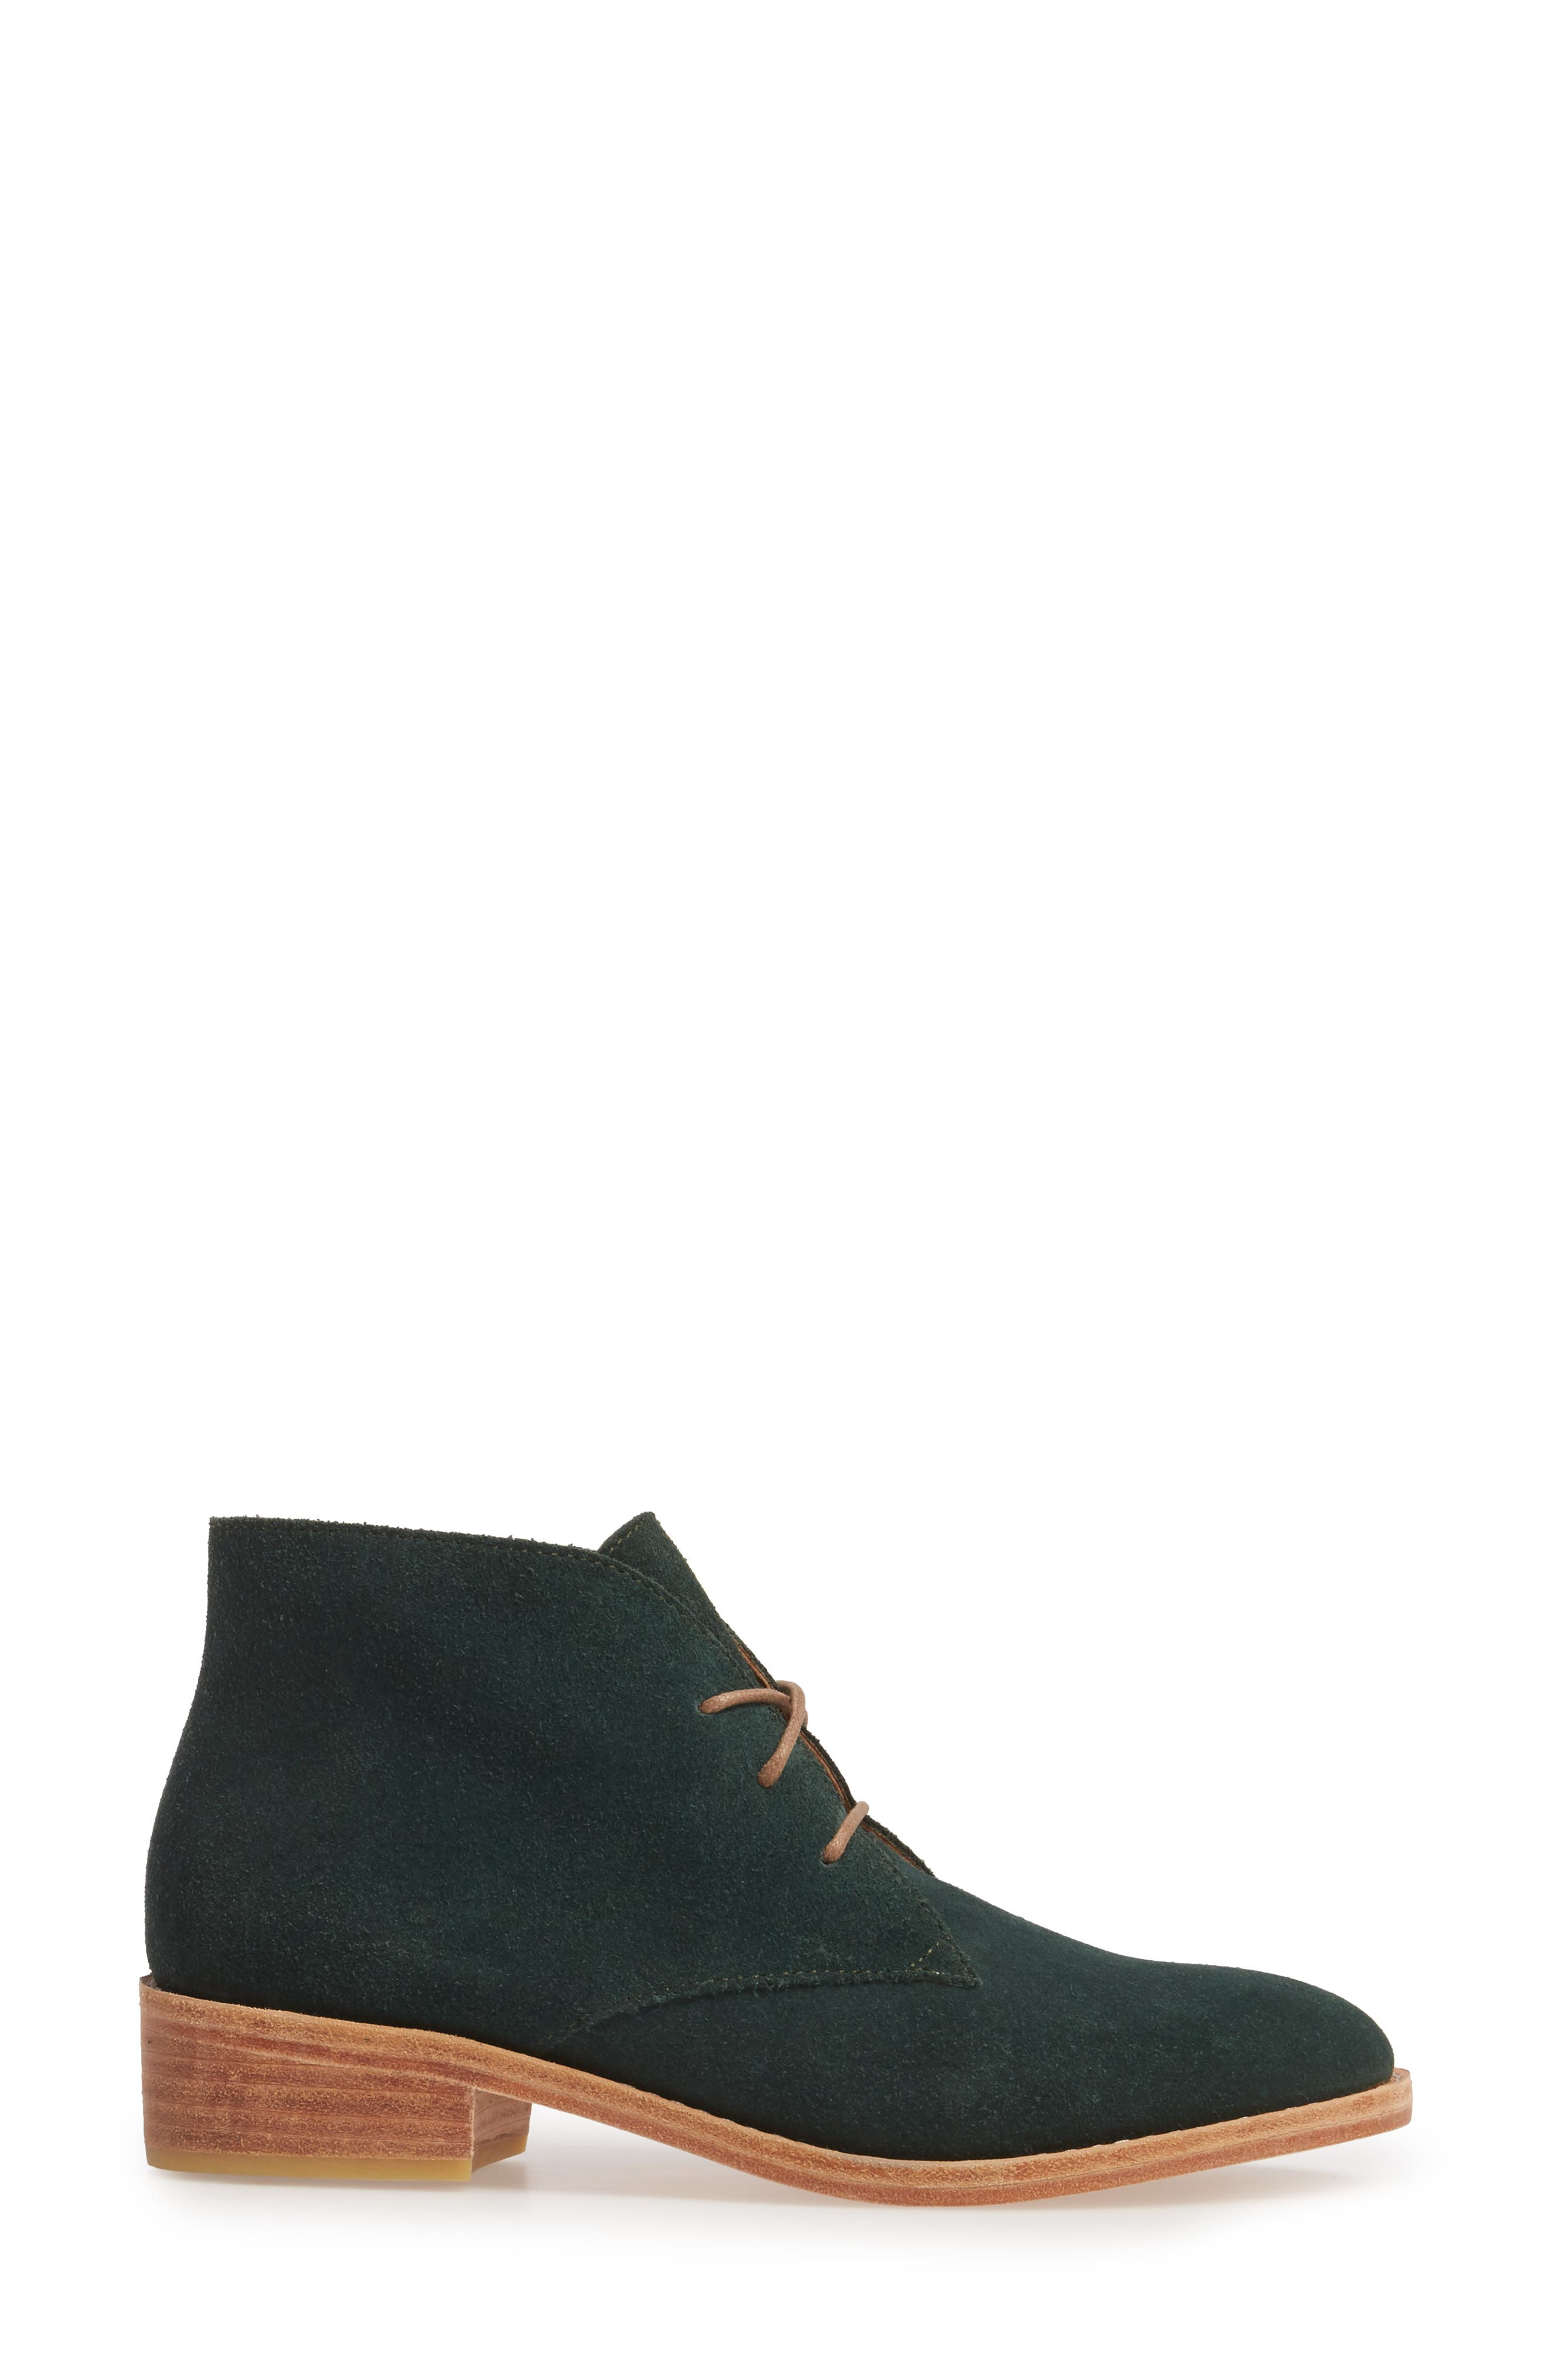 Manuela Chukka Boot,                             Alternate thumbnail 3, color,                             Forest Green Suede